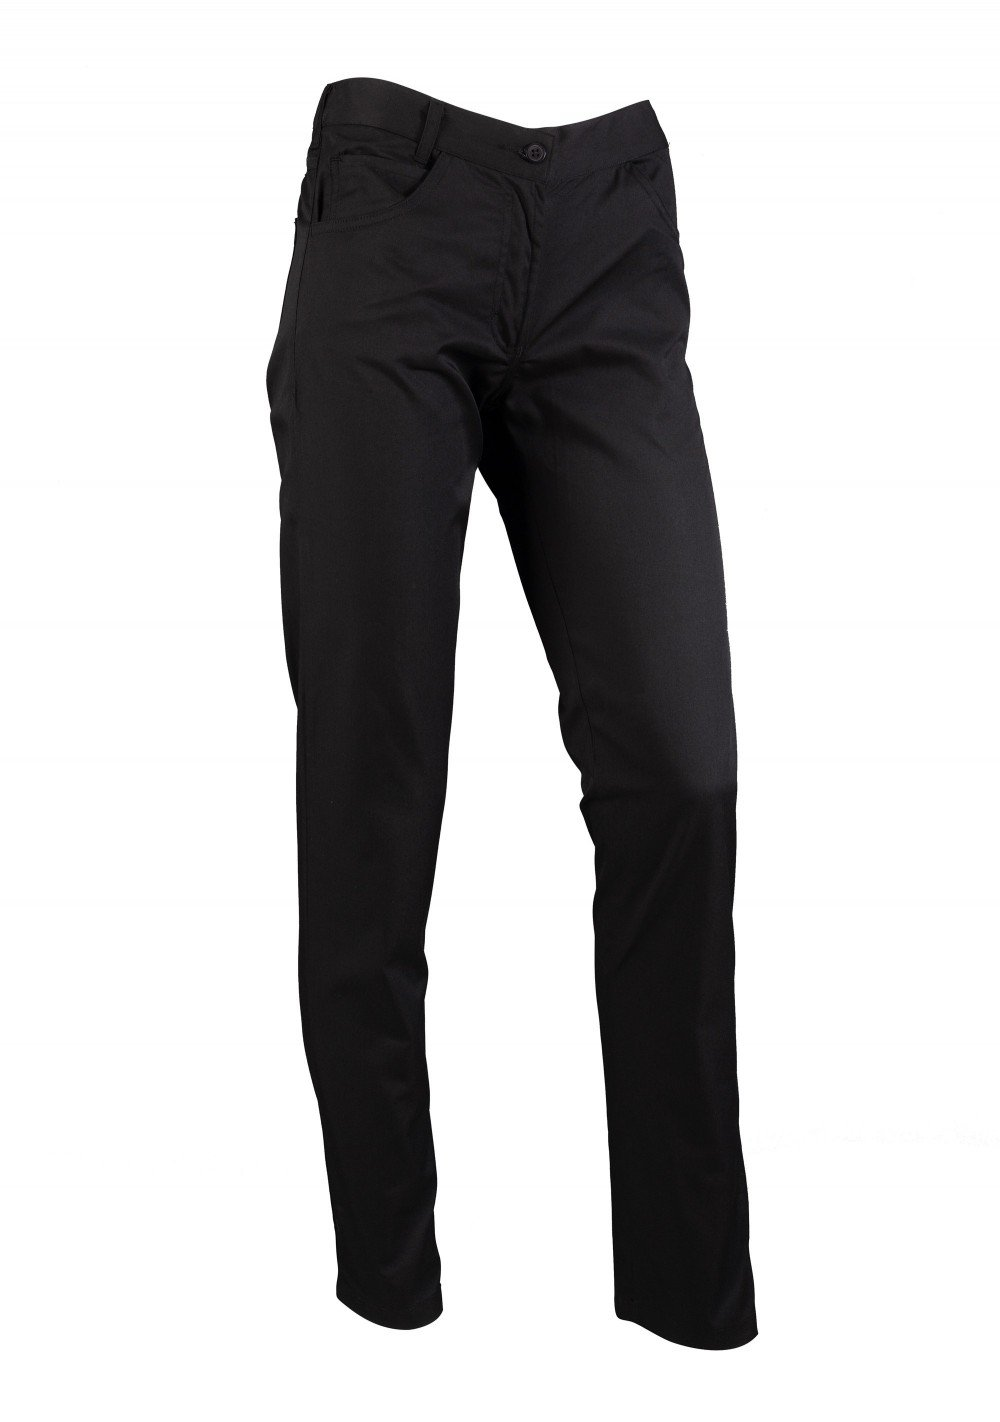 Fitted Women's Chef Cooking Trousers Pants in Black